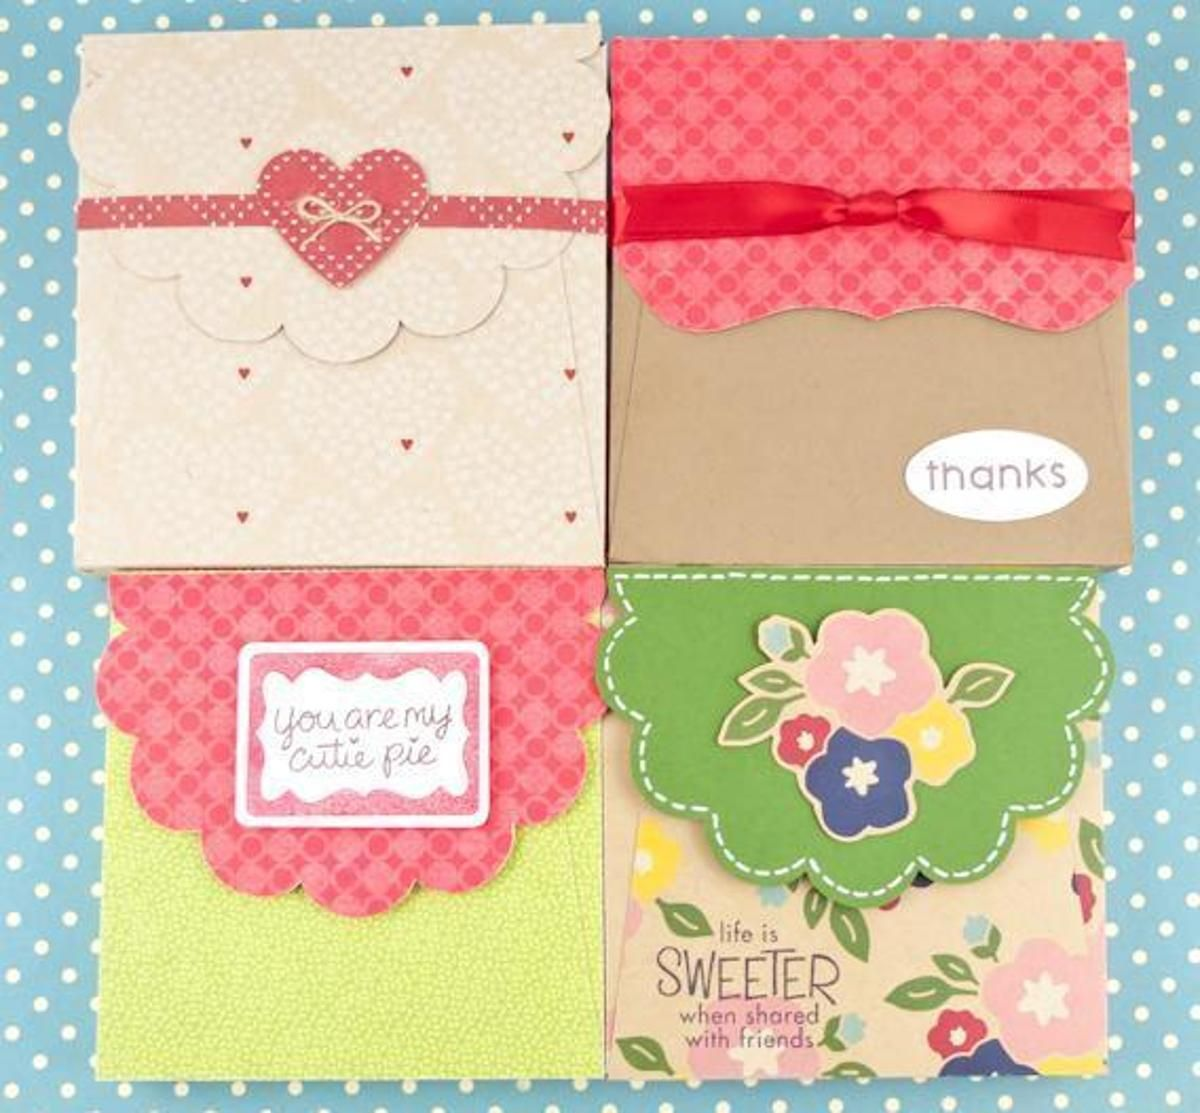 Scalloped Top Box Gifts Perky Packaging Pinterest